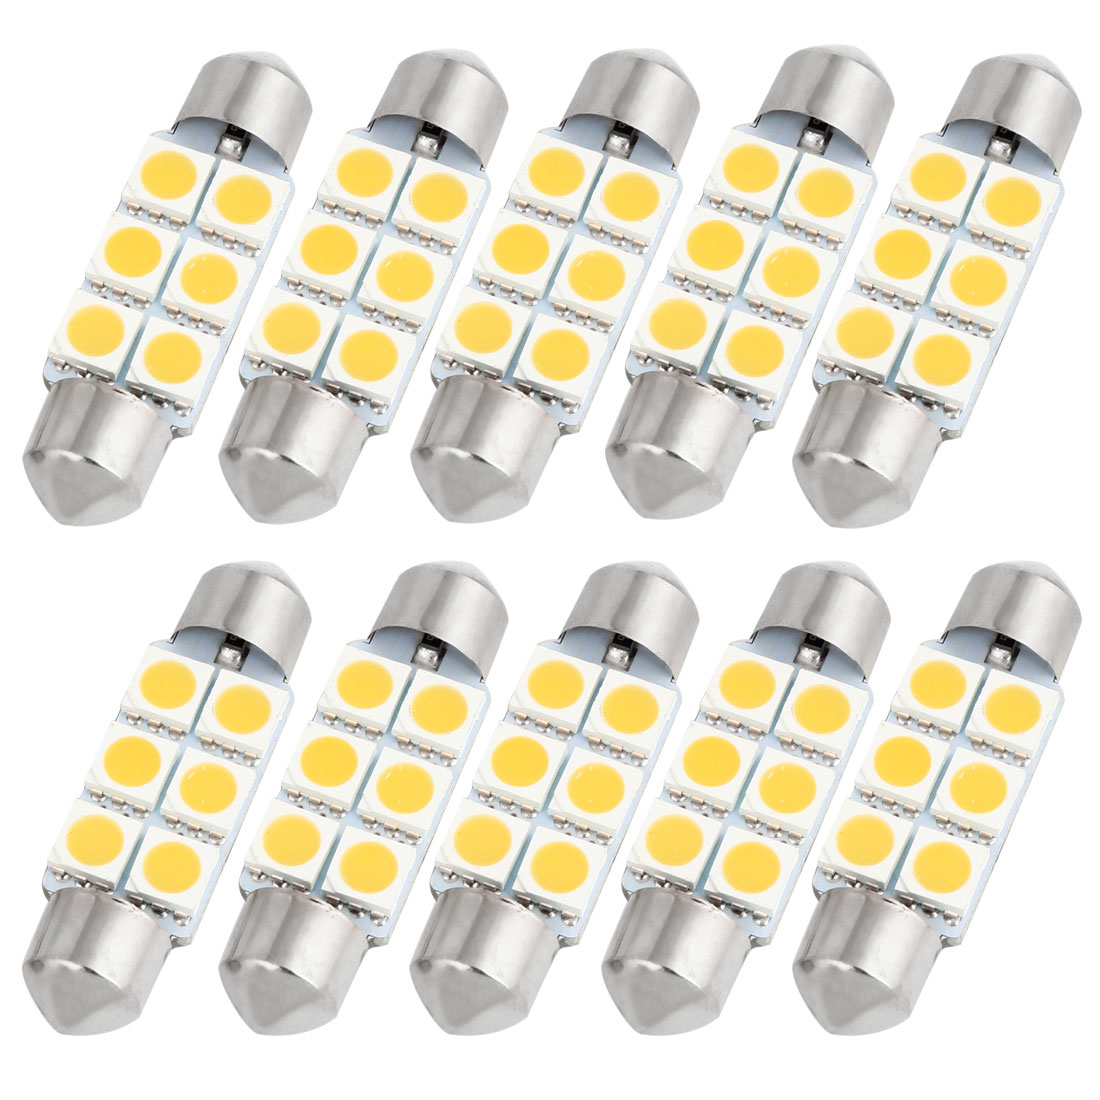 "10PCS Warm White 5050 SMD 6 LEDs 1.54"" 39mm Festoon Dome Lights 6418 DE3423 Internal"